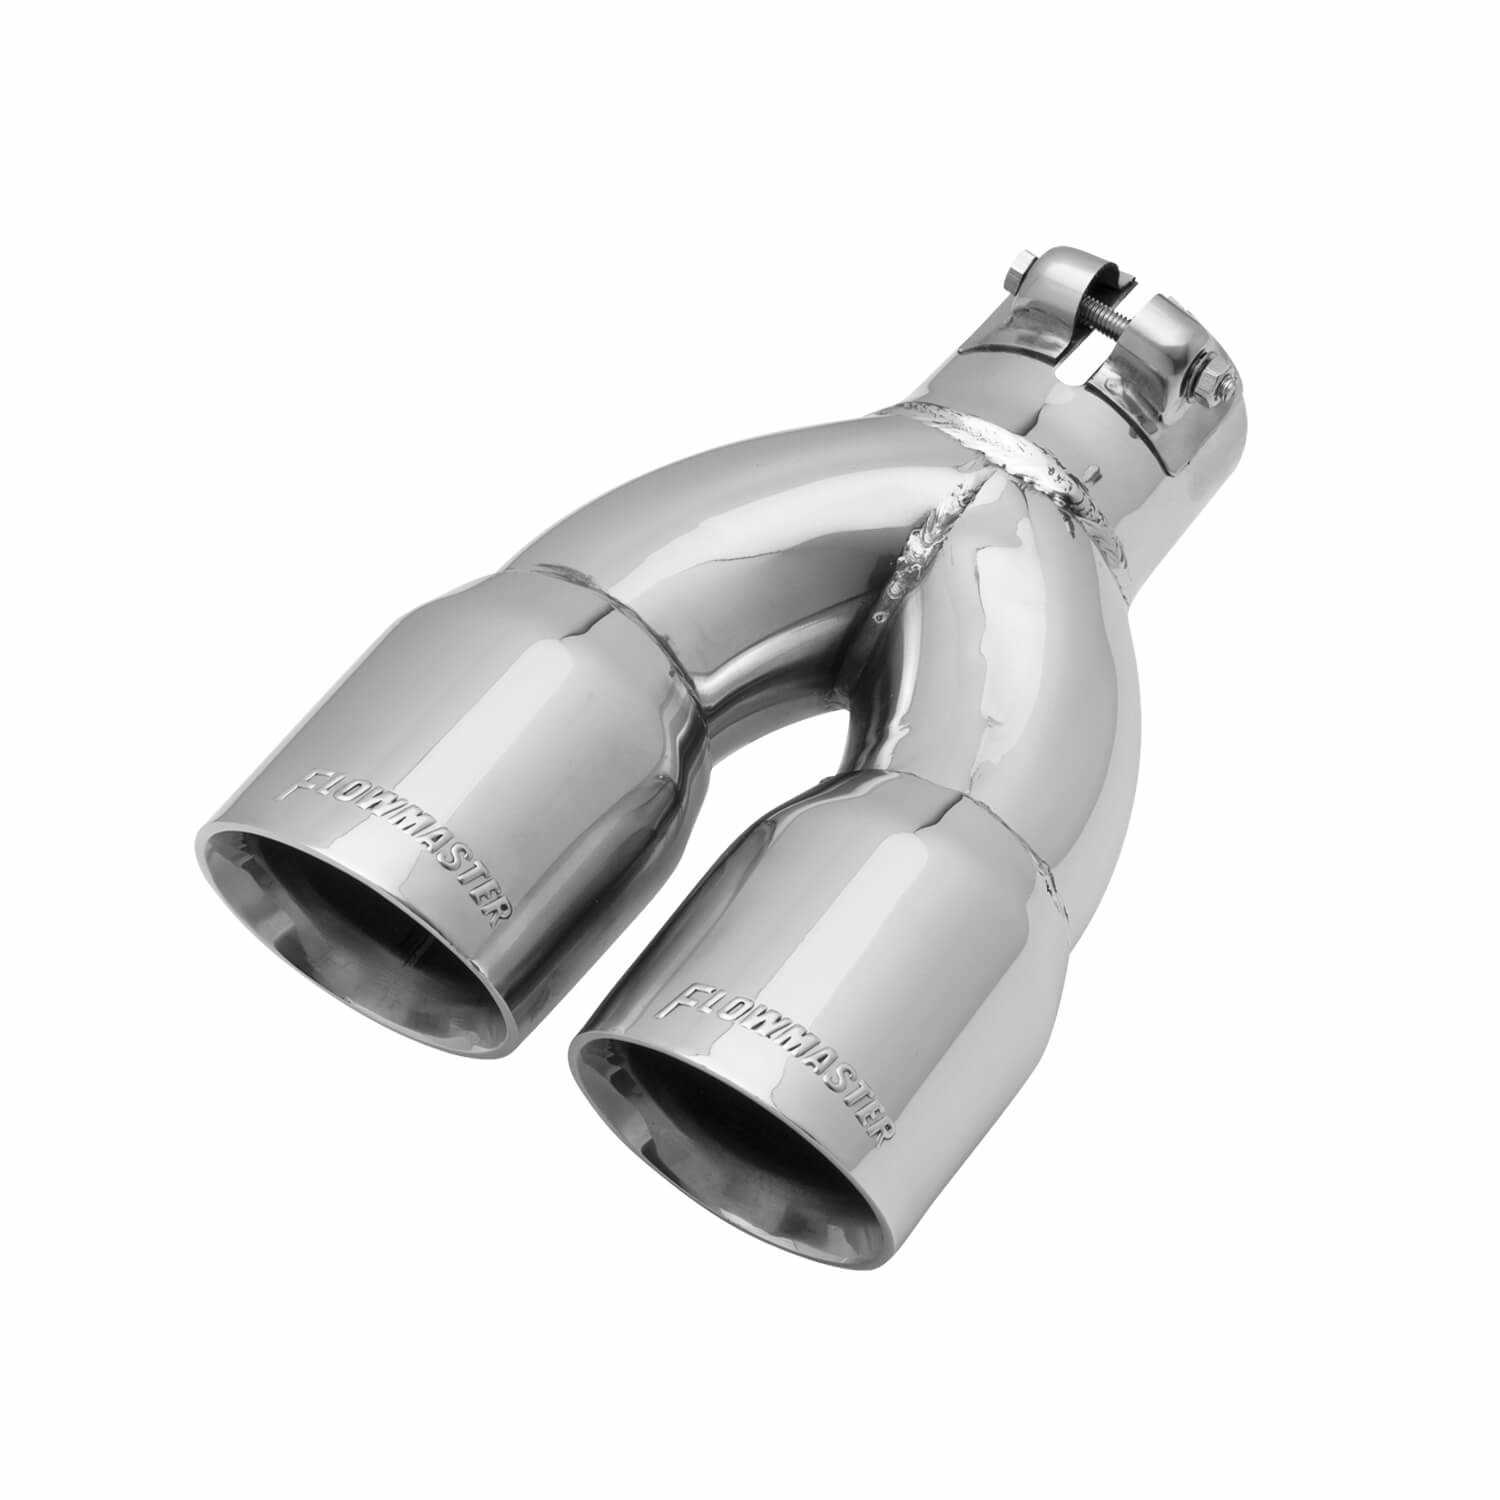 15384 Flowmaster Stainless Steel Exhaust Tip